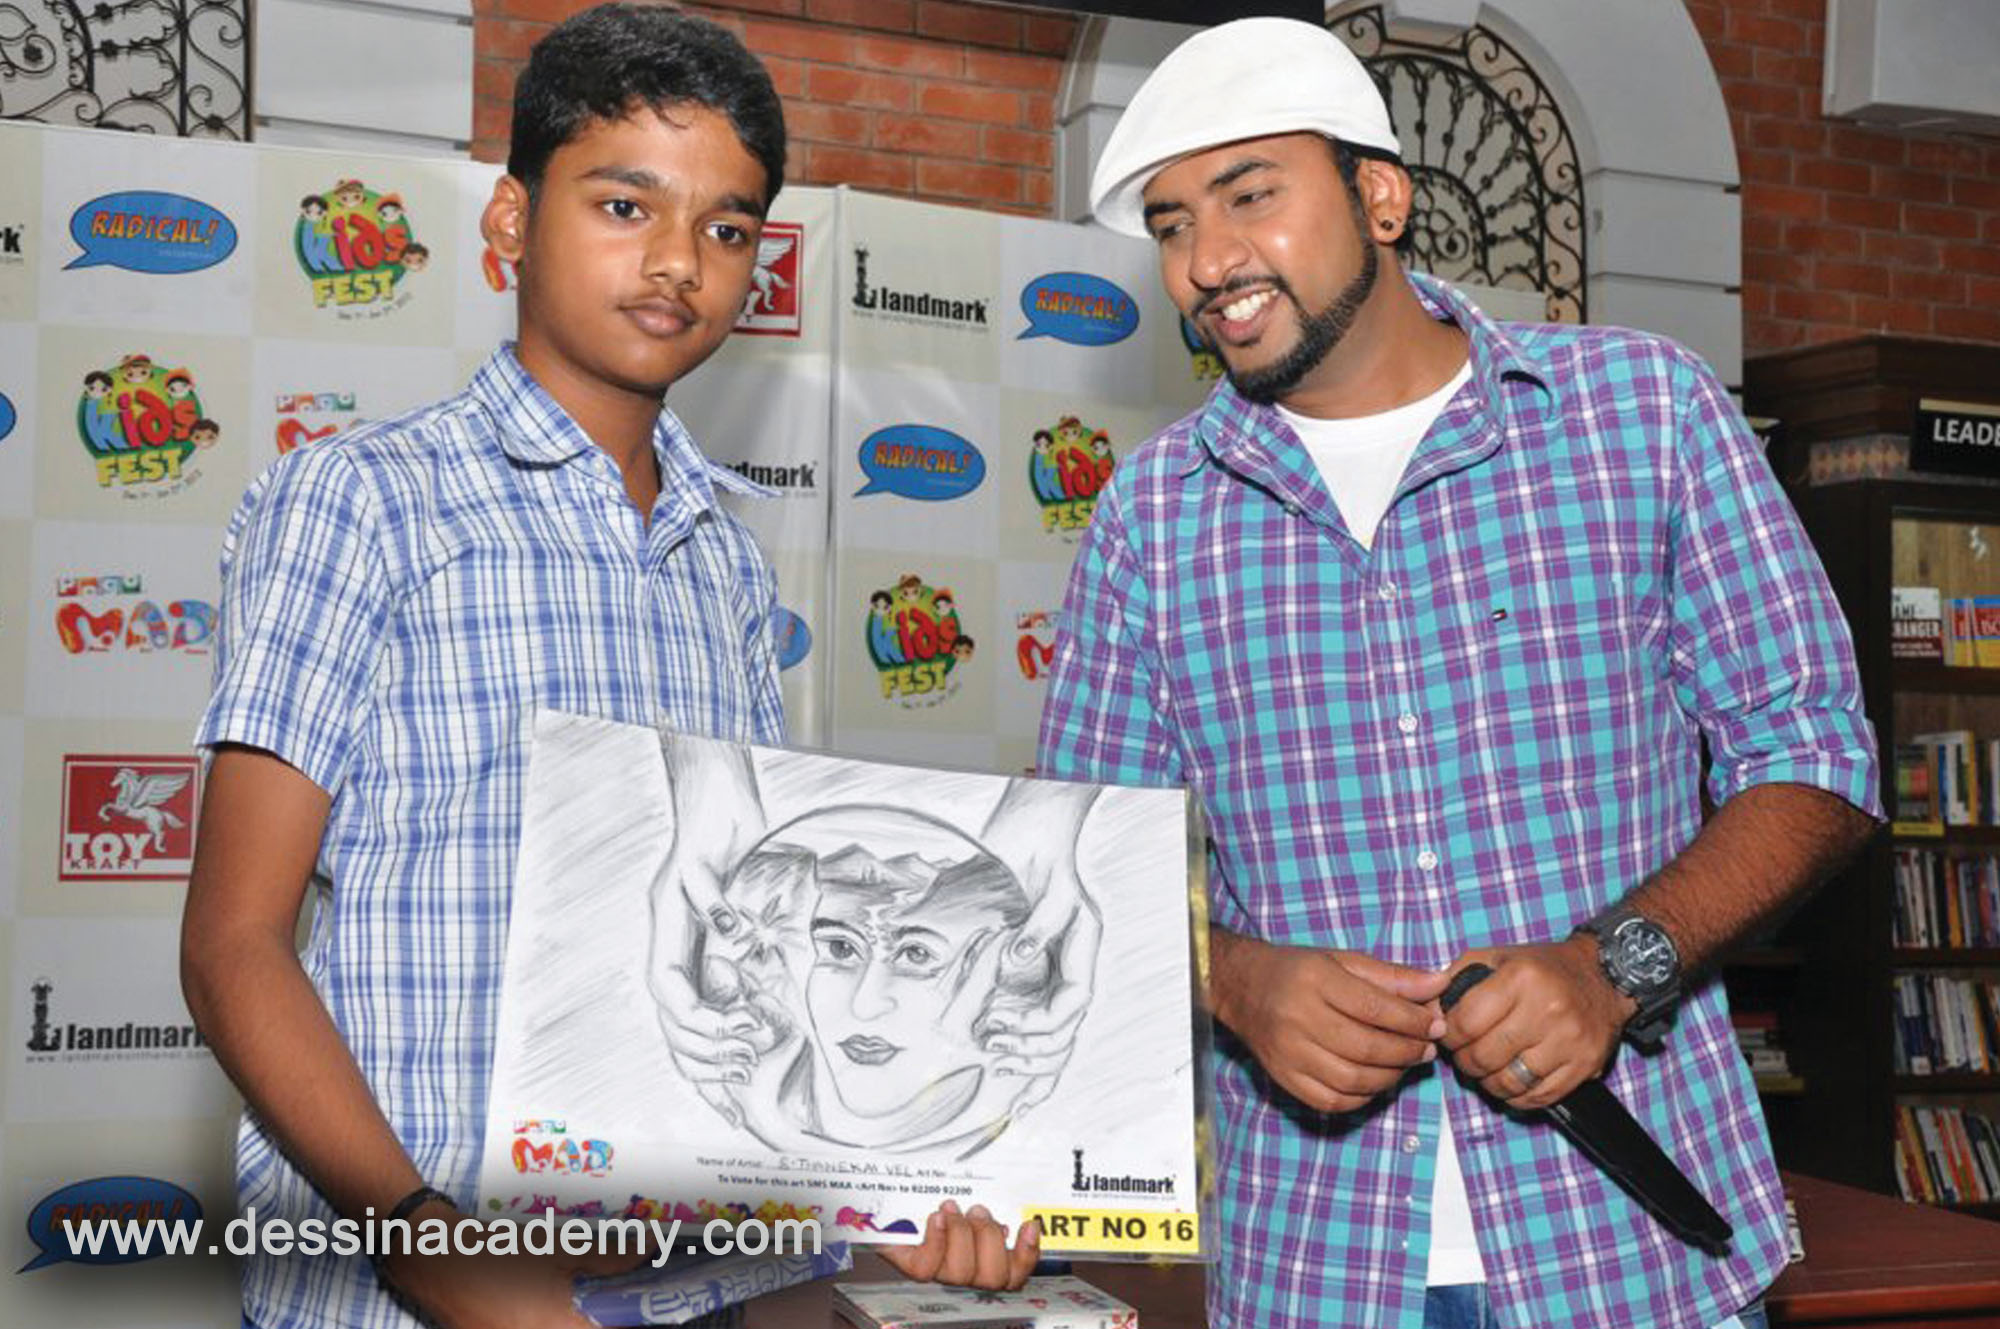 Dessin School of Arts Students Acheivement 5, Dessin School of Arts, charcoal Drawing classes For Kids in chennai